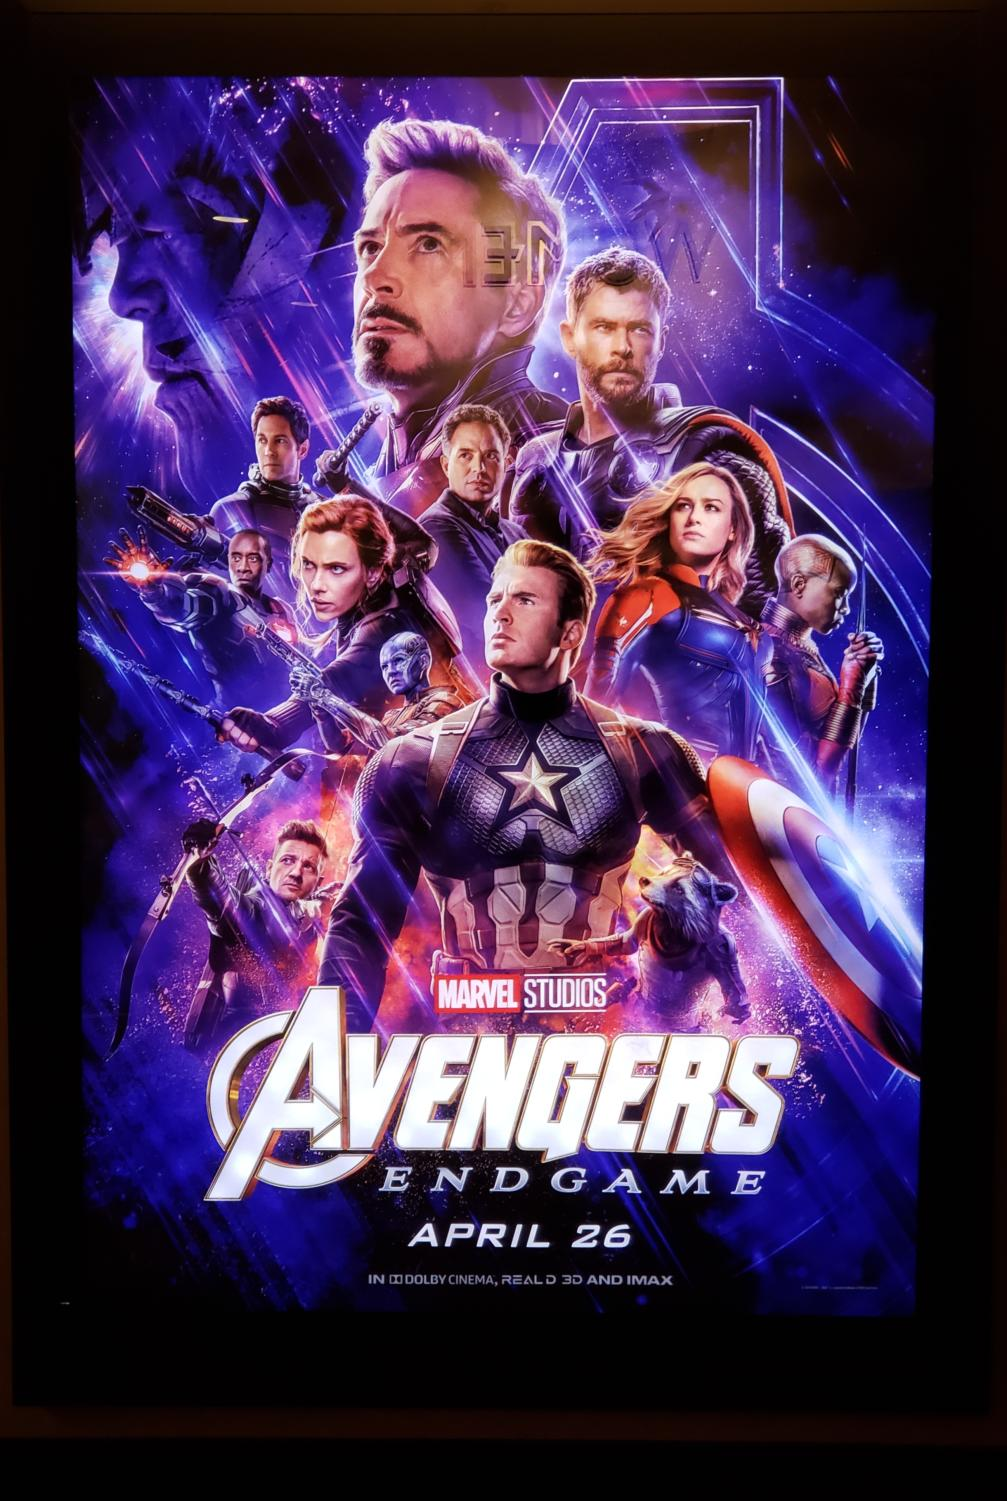 Movie poster of Avengers: Endgame at the movie theater.